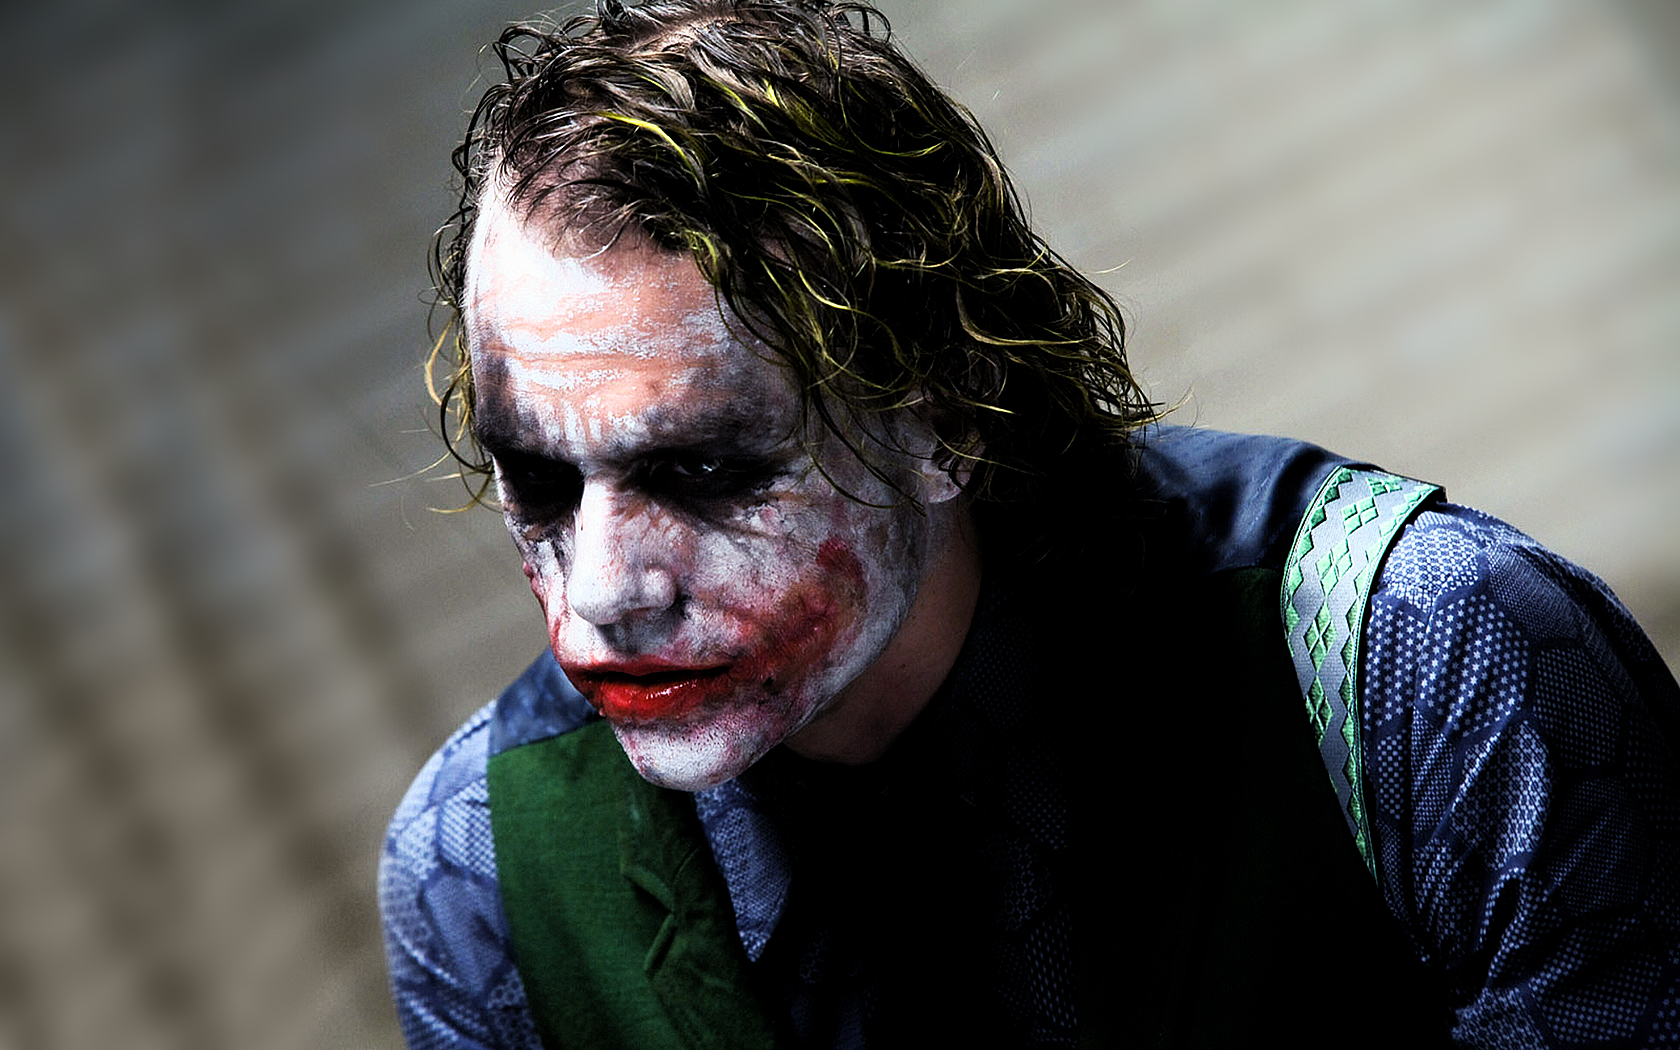 dark knight the joker heath ledger HD Wallpaper   Movies TV 43795 1680x1050